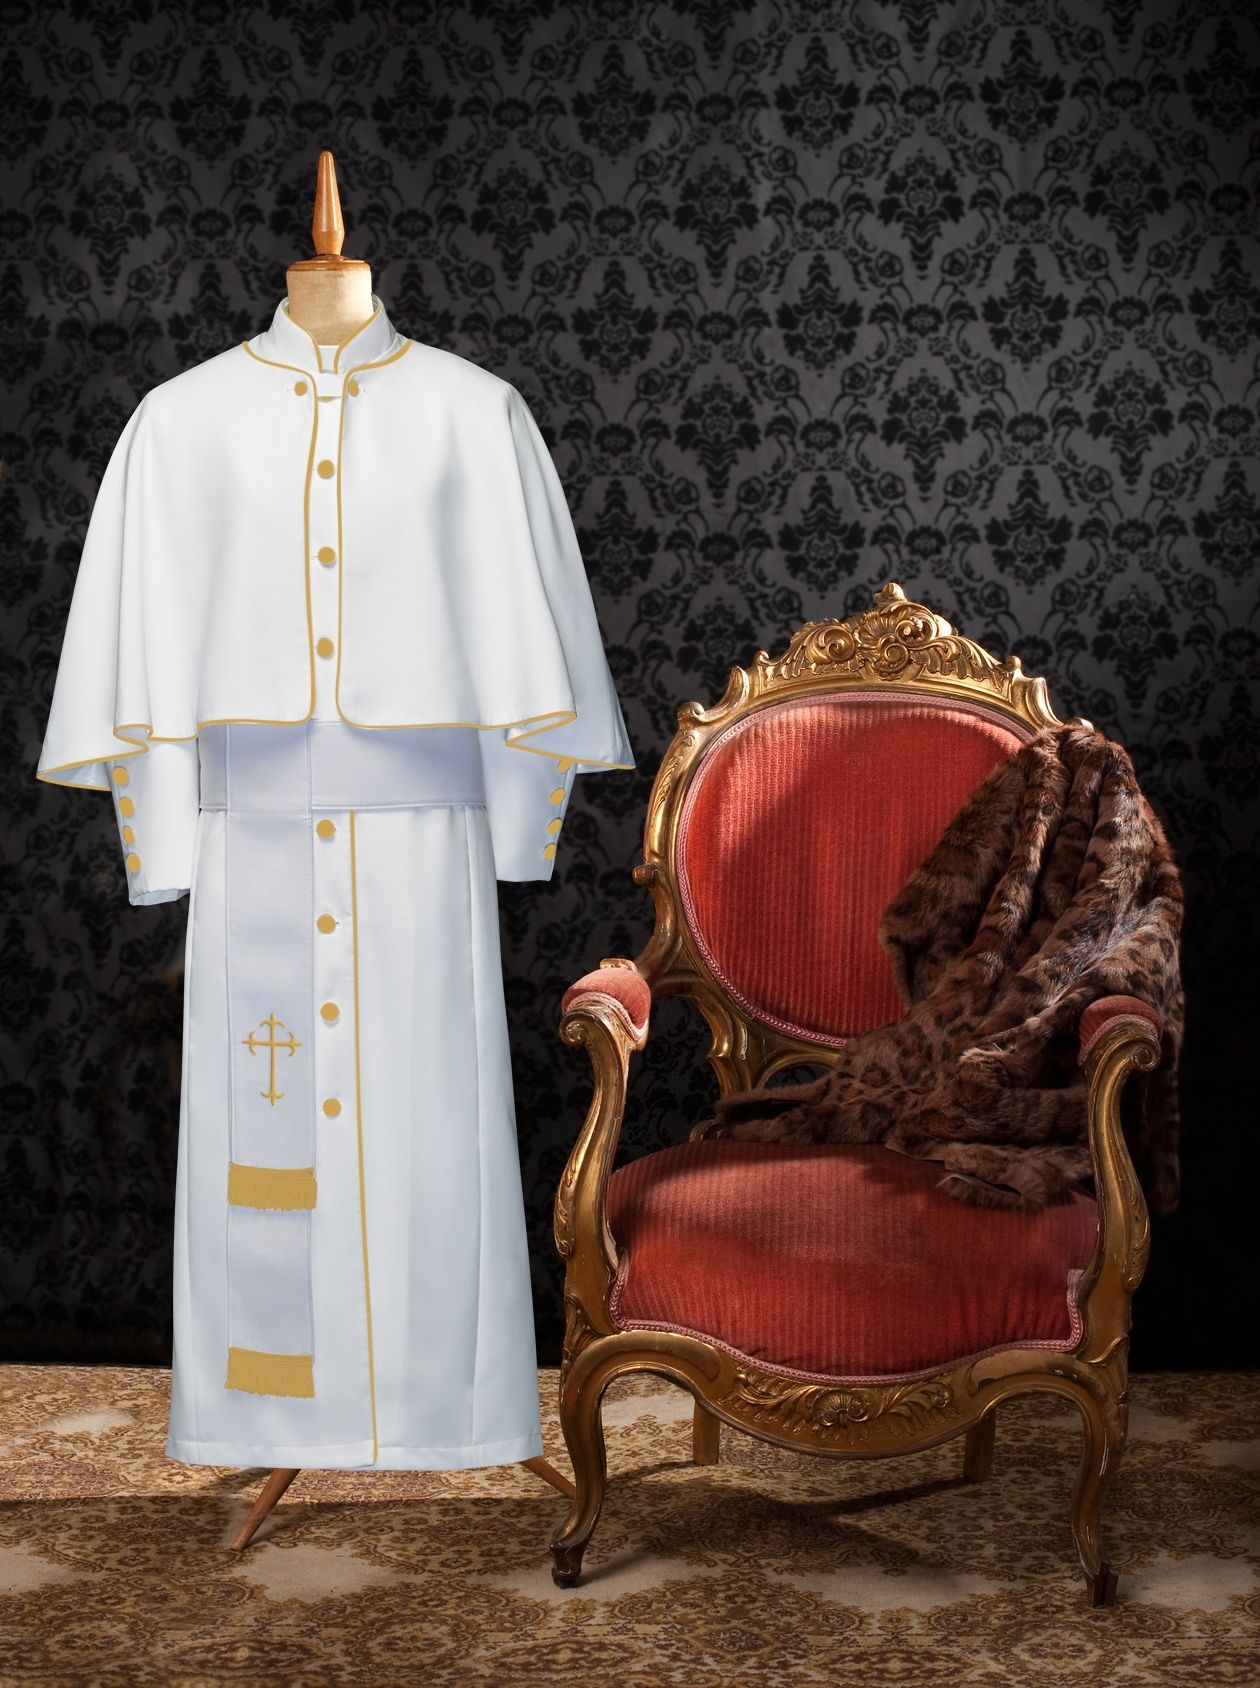 173 W. Limited Exclusive Women's Pastor/Clergy Robe White/Gold Luxury Ensemble